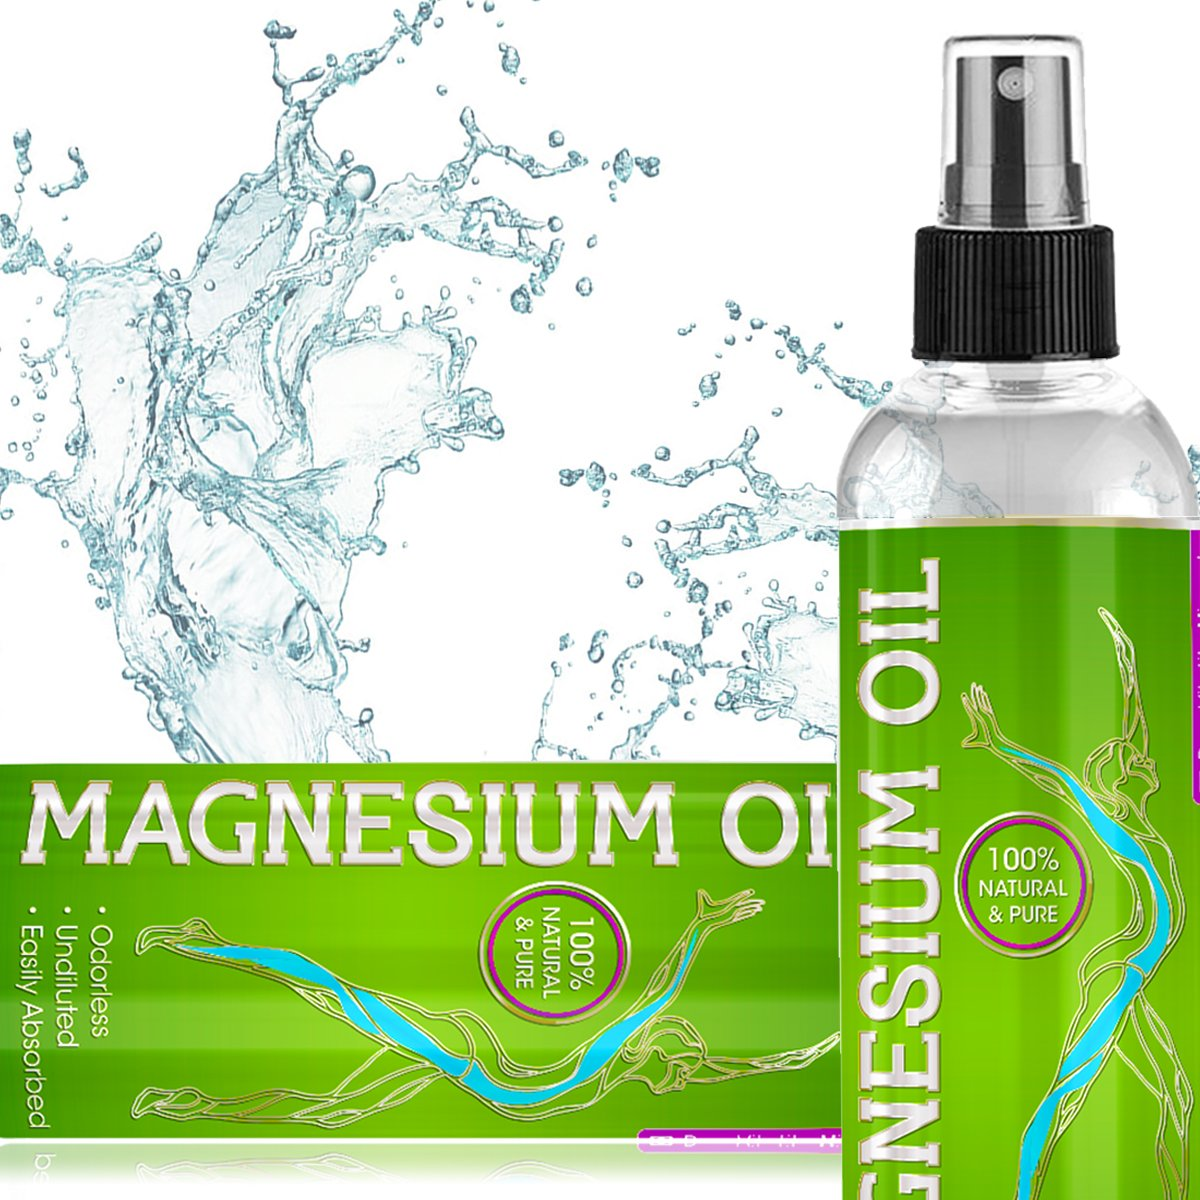 Pure Magnesium Oil Spray - Maximum Magnesium Per Oz - Undiluted USP Grade (NO impurities